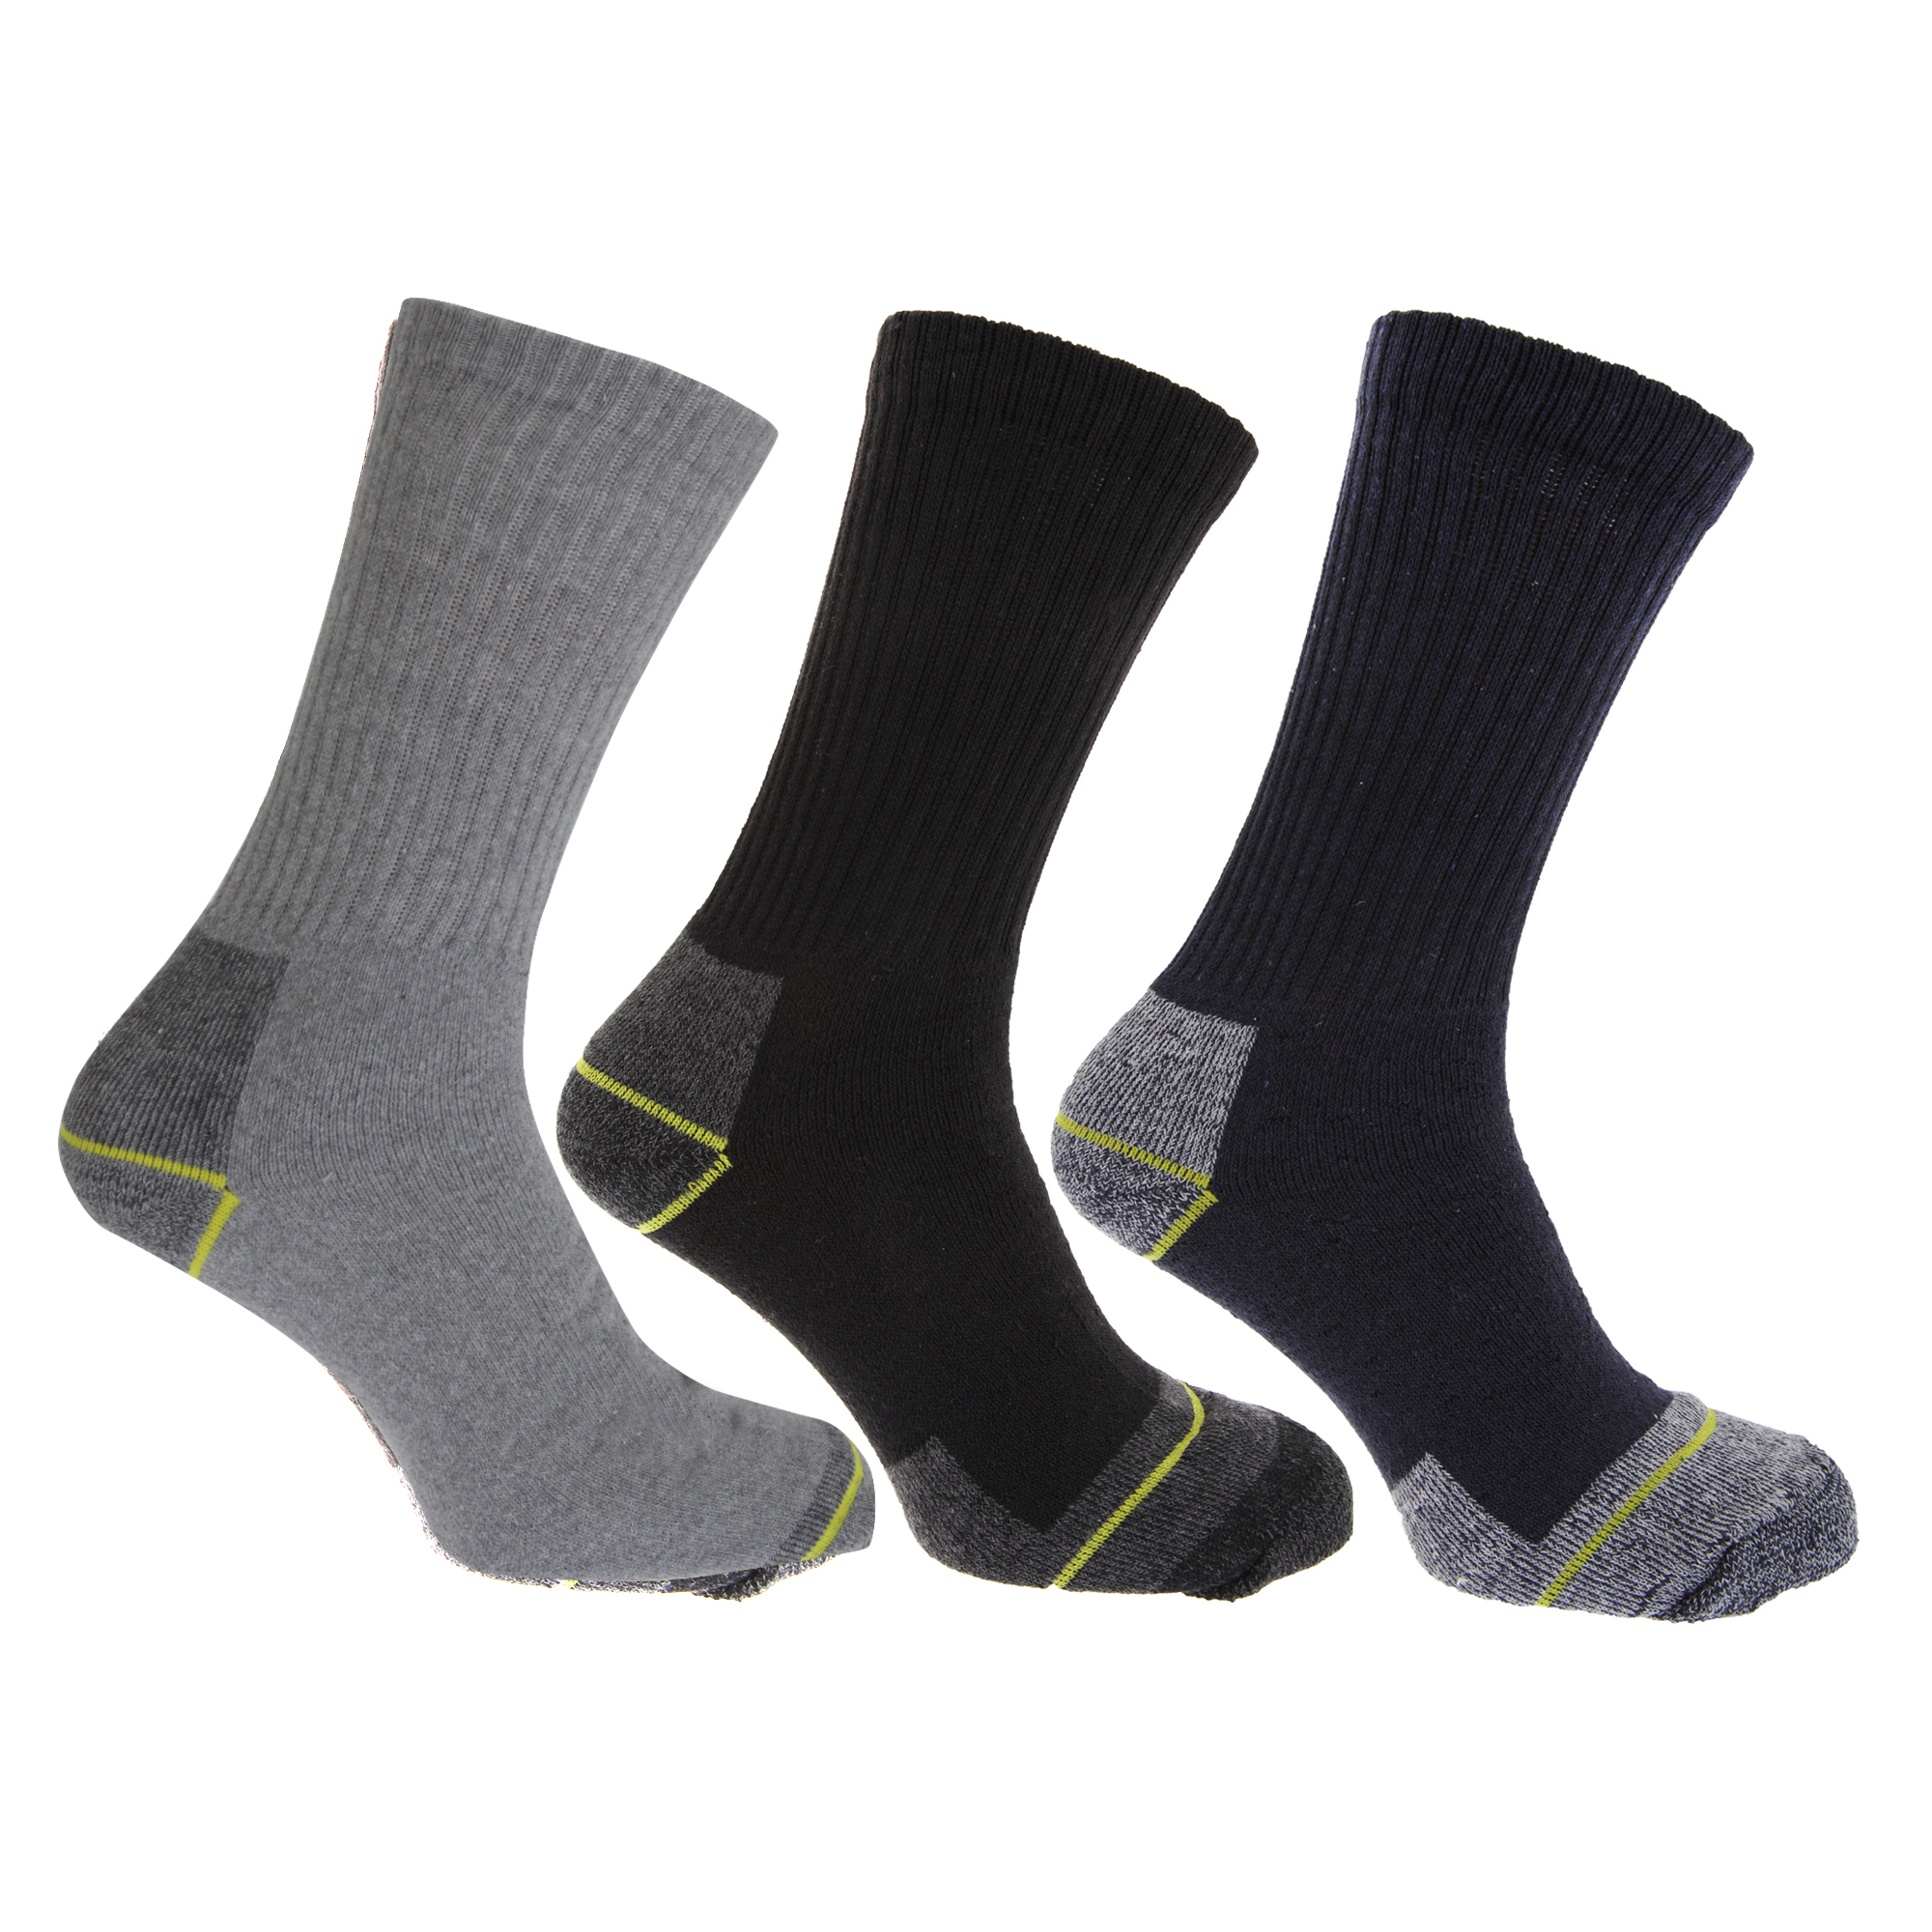 Large Size Mens Cushioned Socks 56